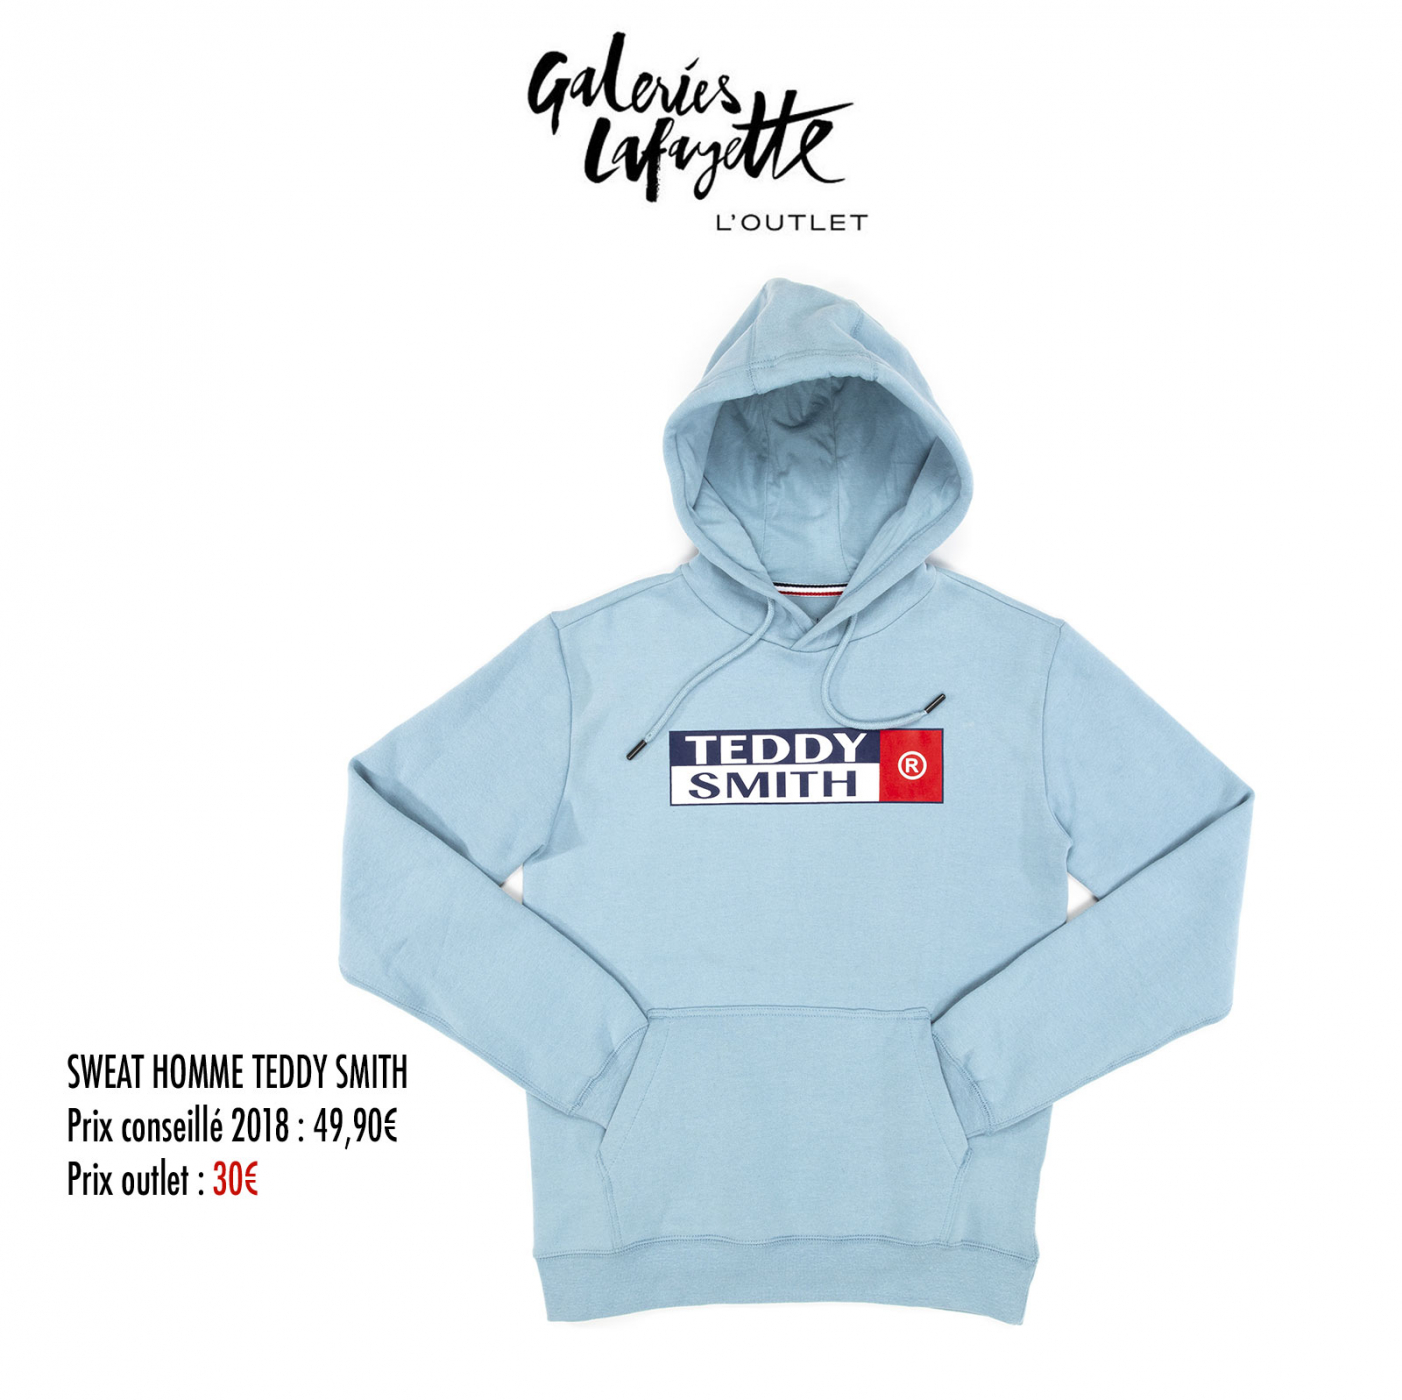 Sweat Homme Teddy Smith - Galeries Lafayette L'Outlet